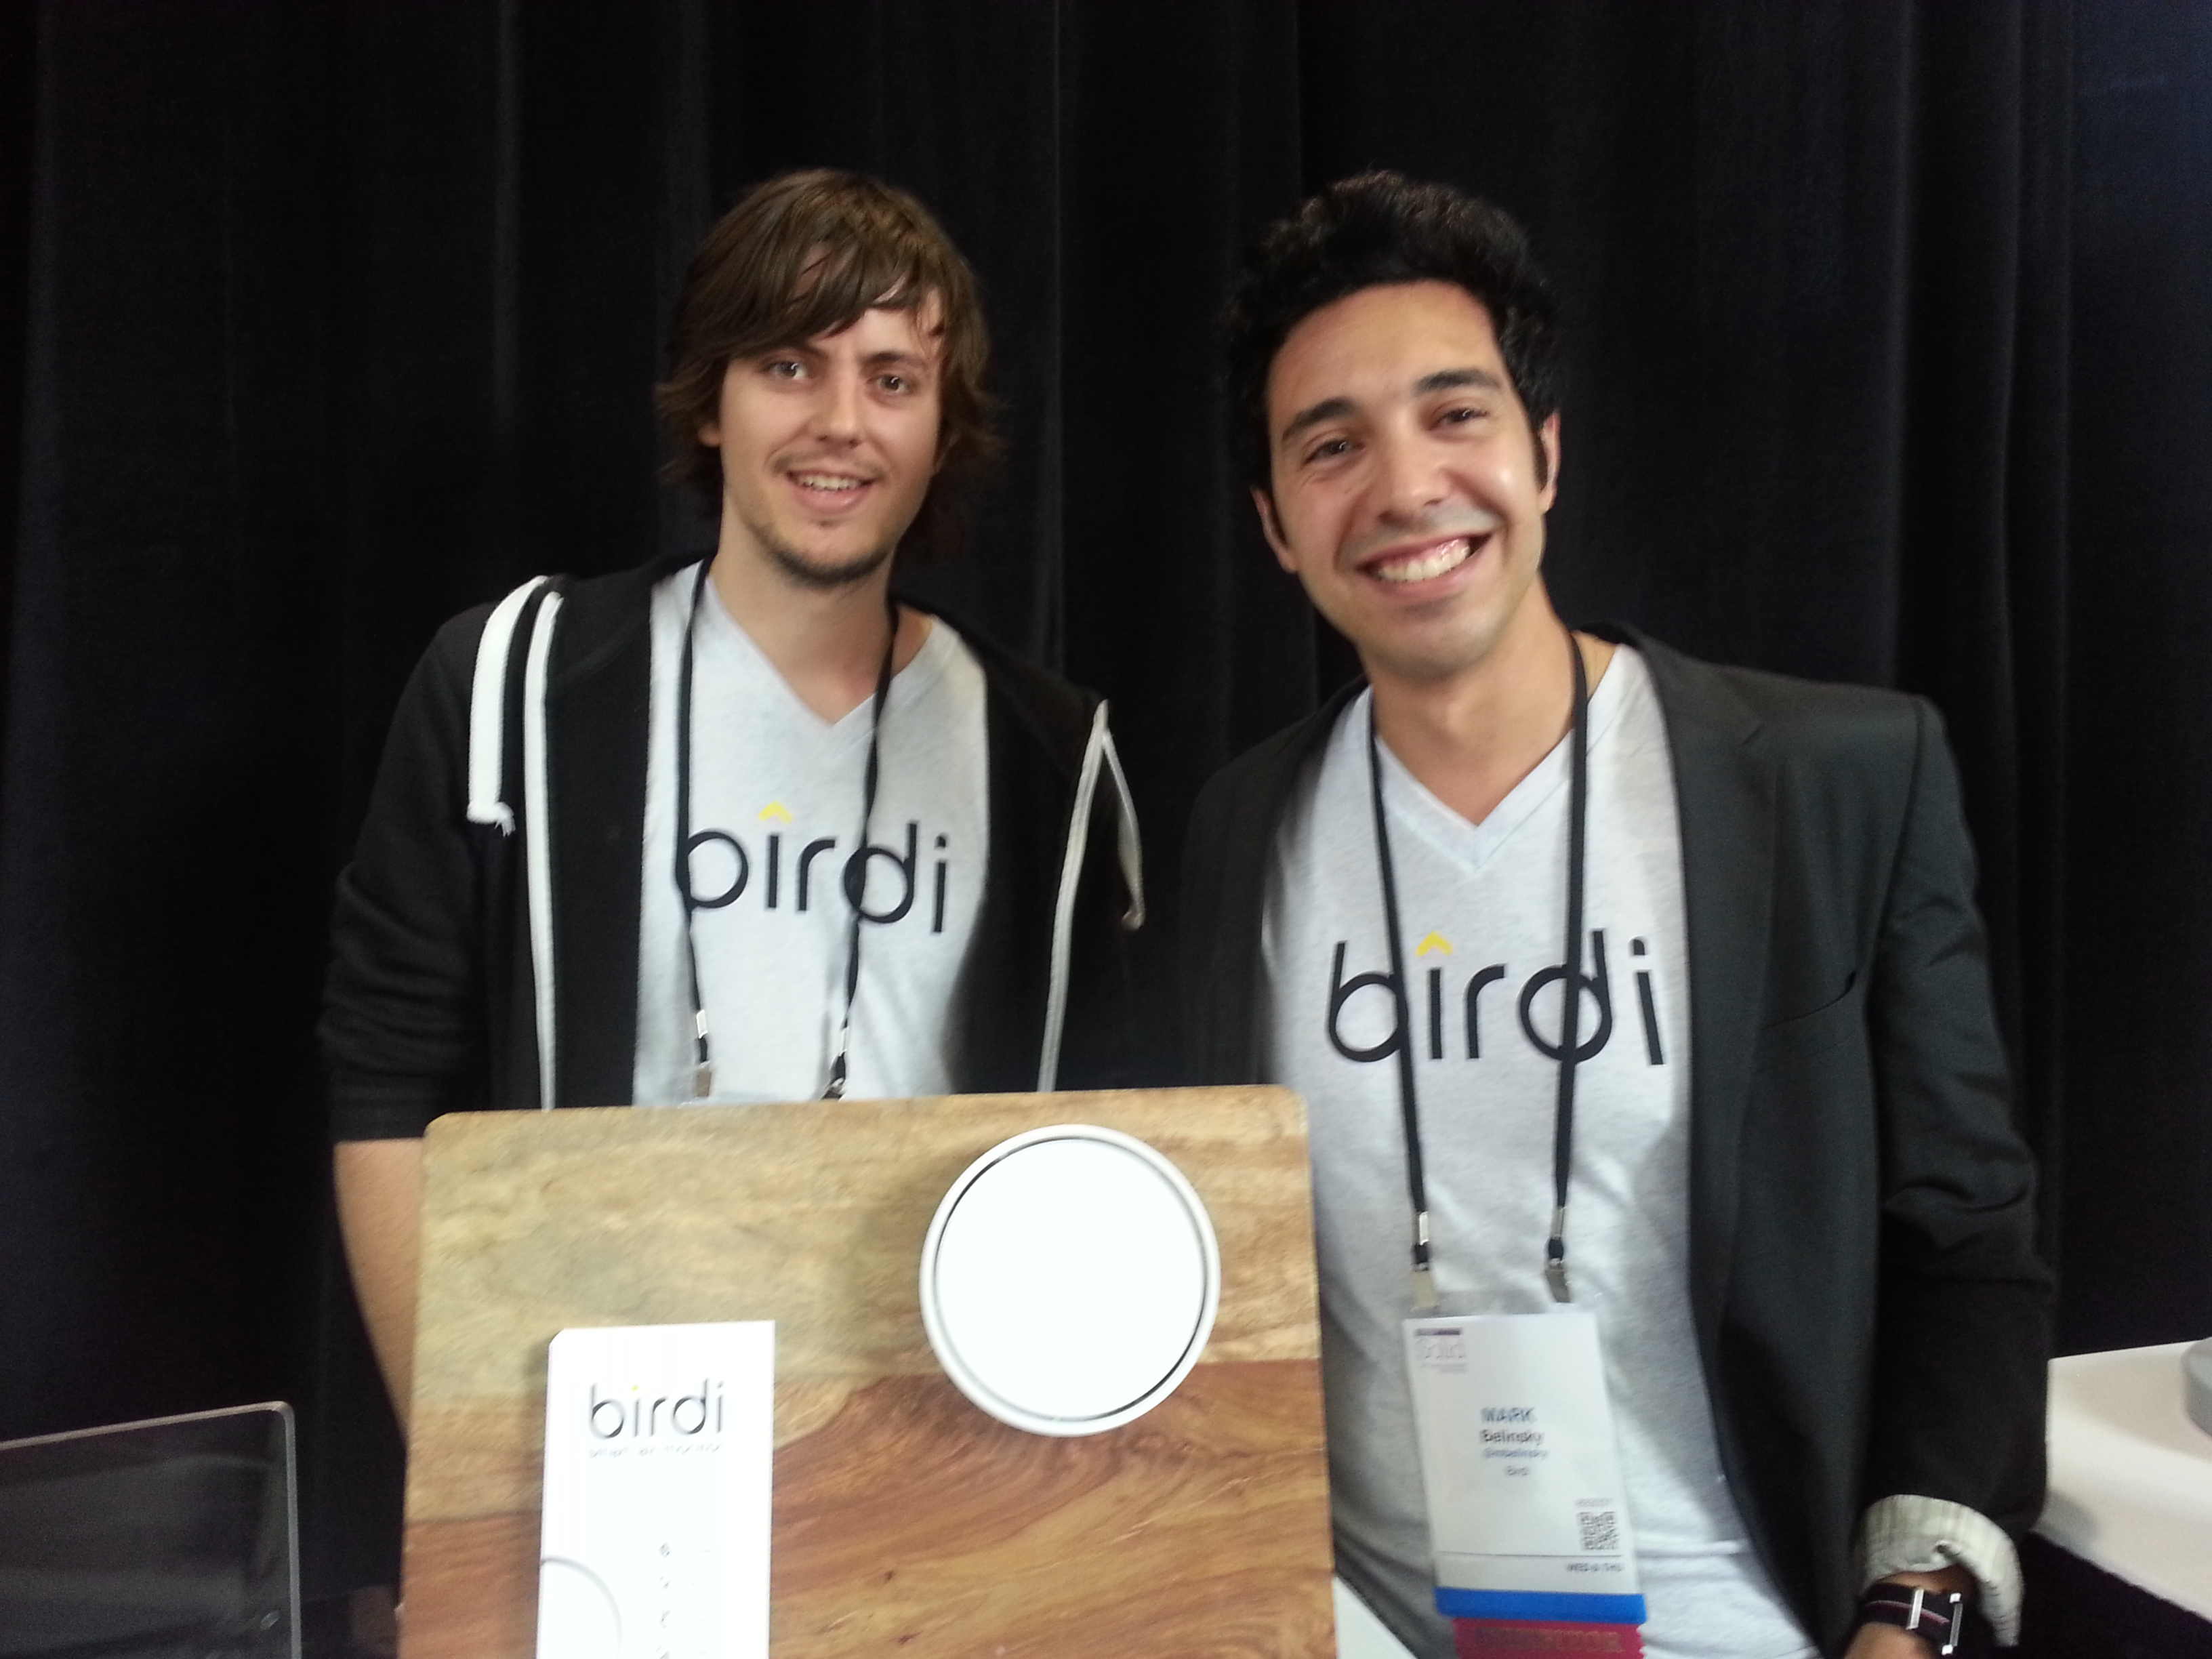 The founders of Birdi and their connected air quality monitor.